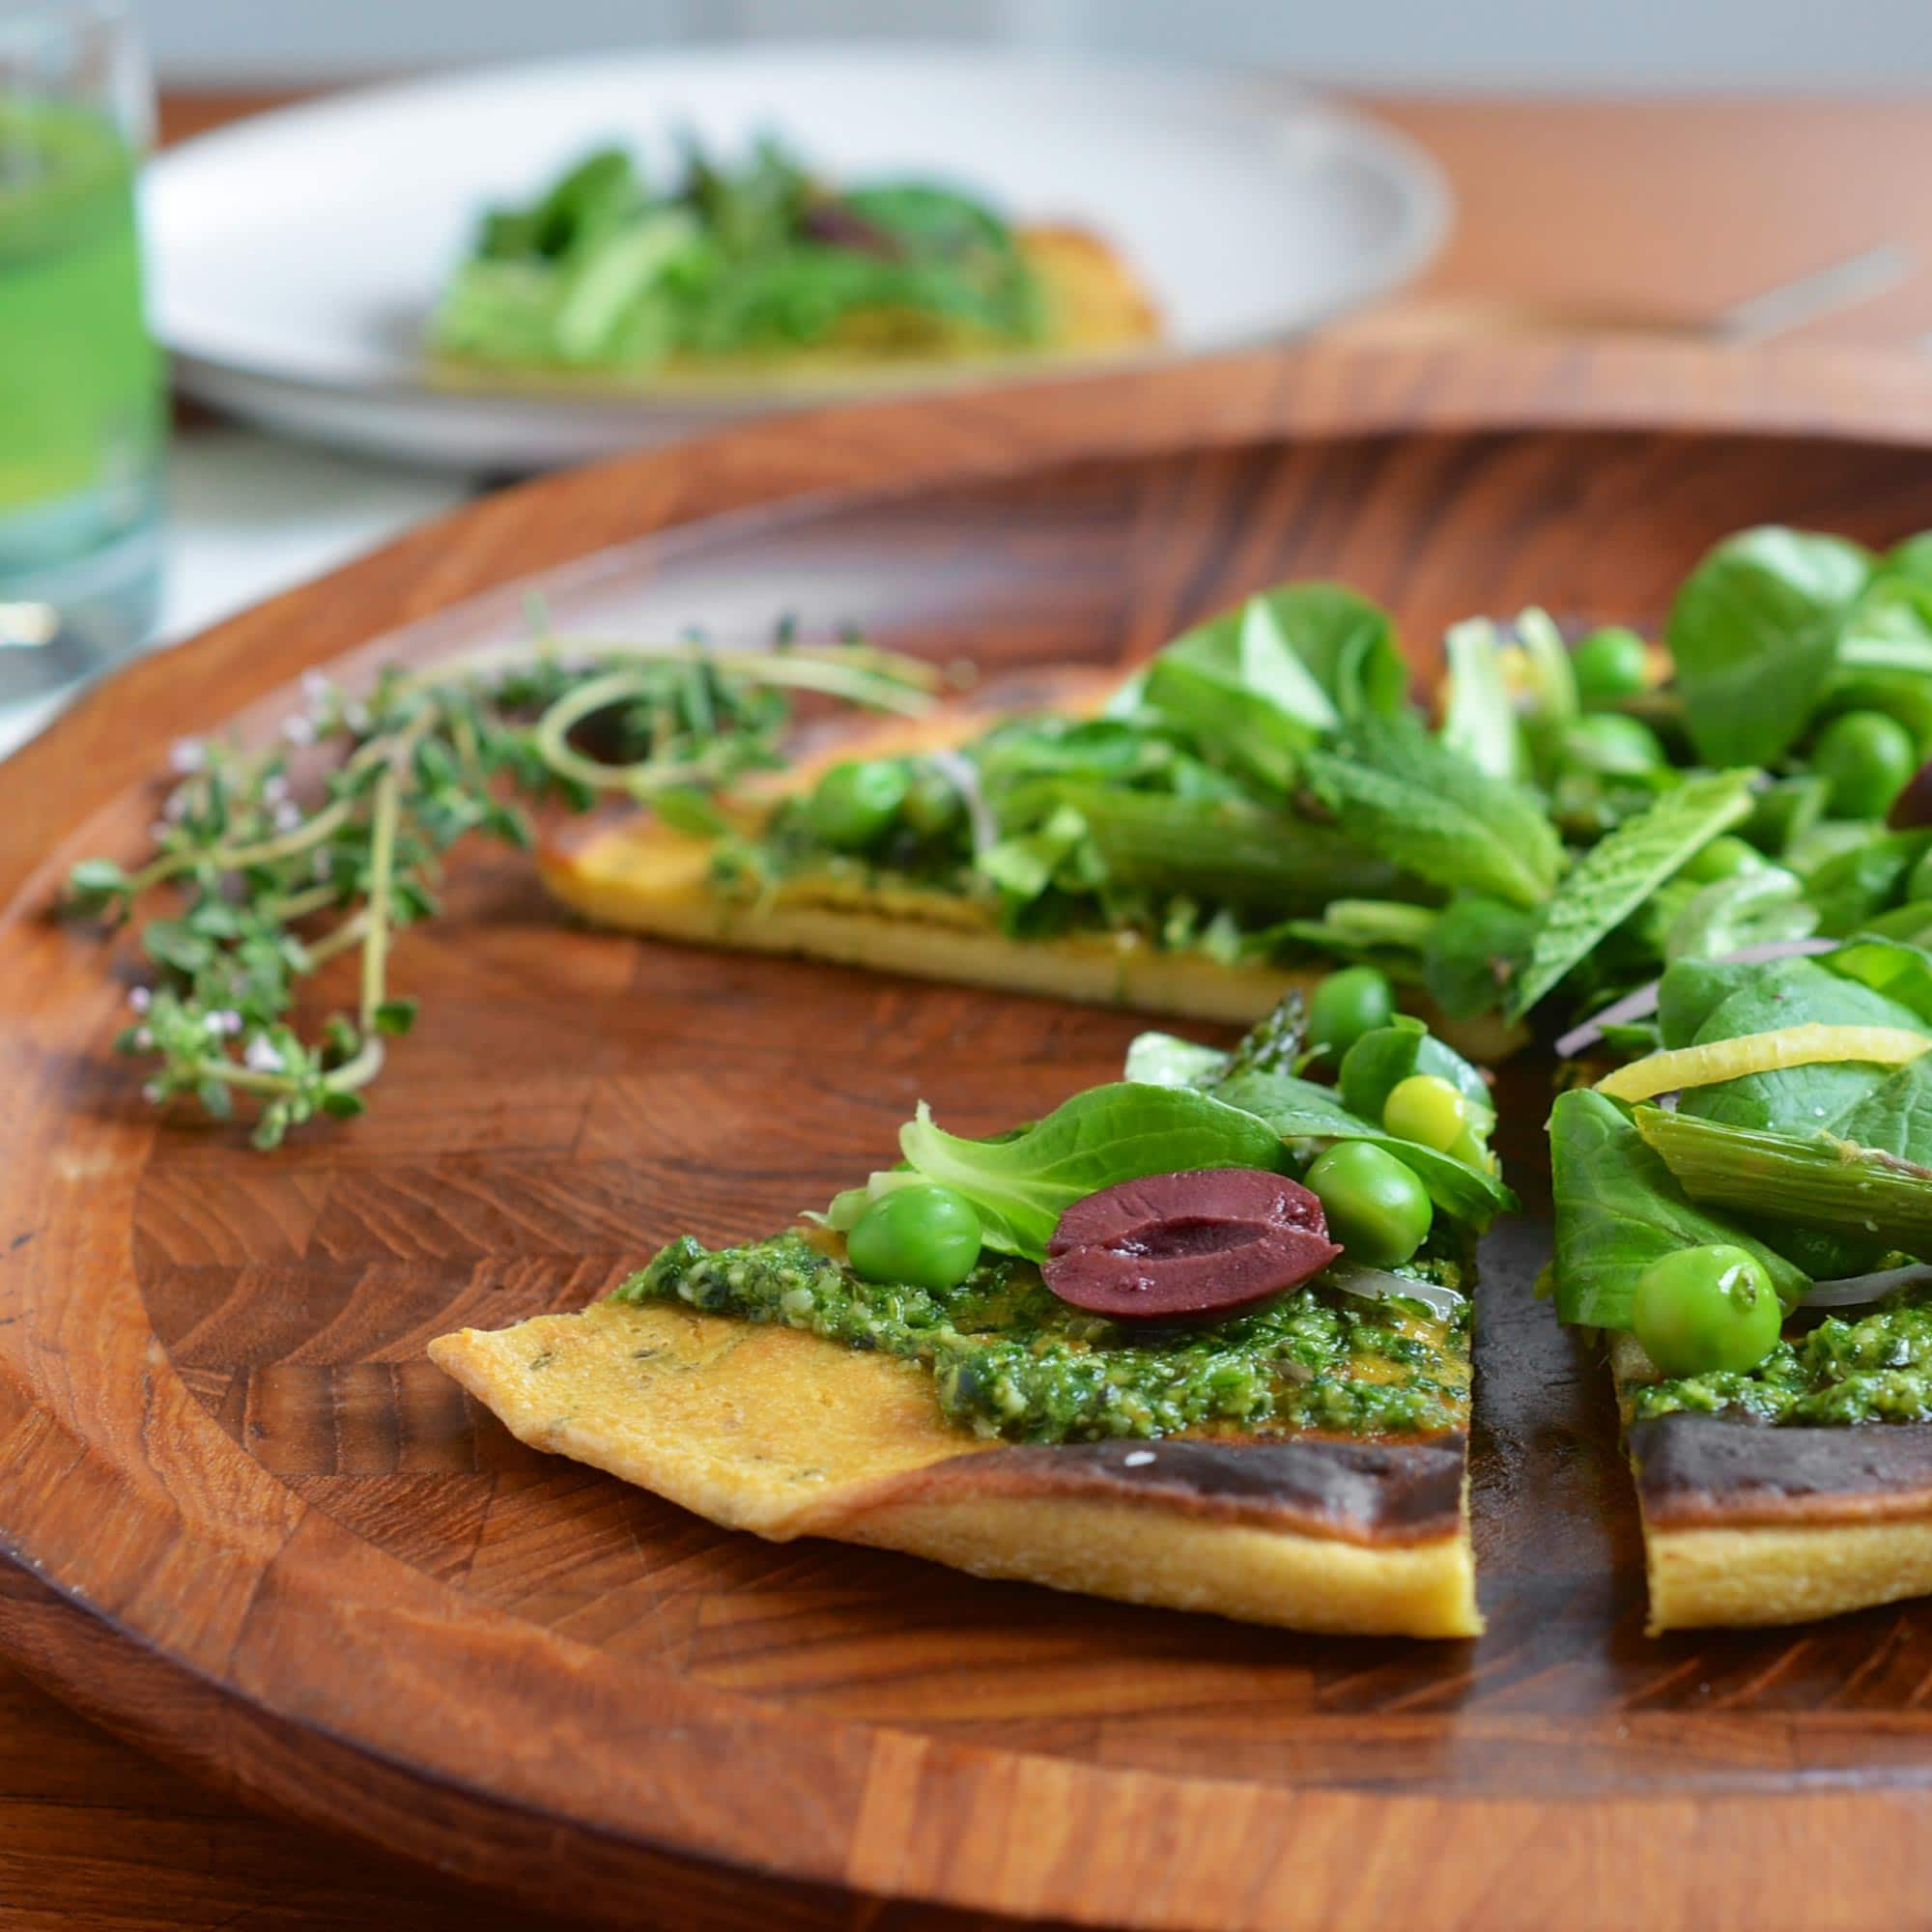 Recipe: Socca Flatbread with Spring Pesto and Salad